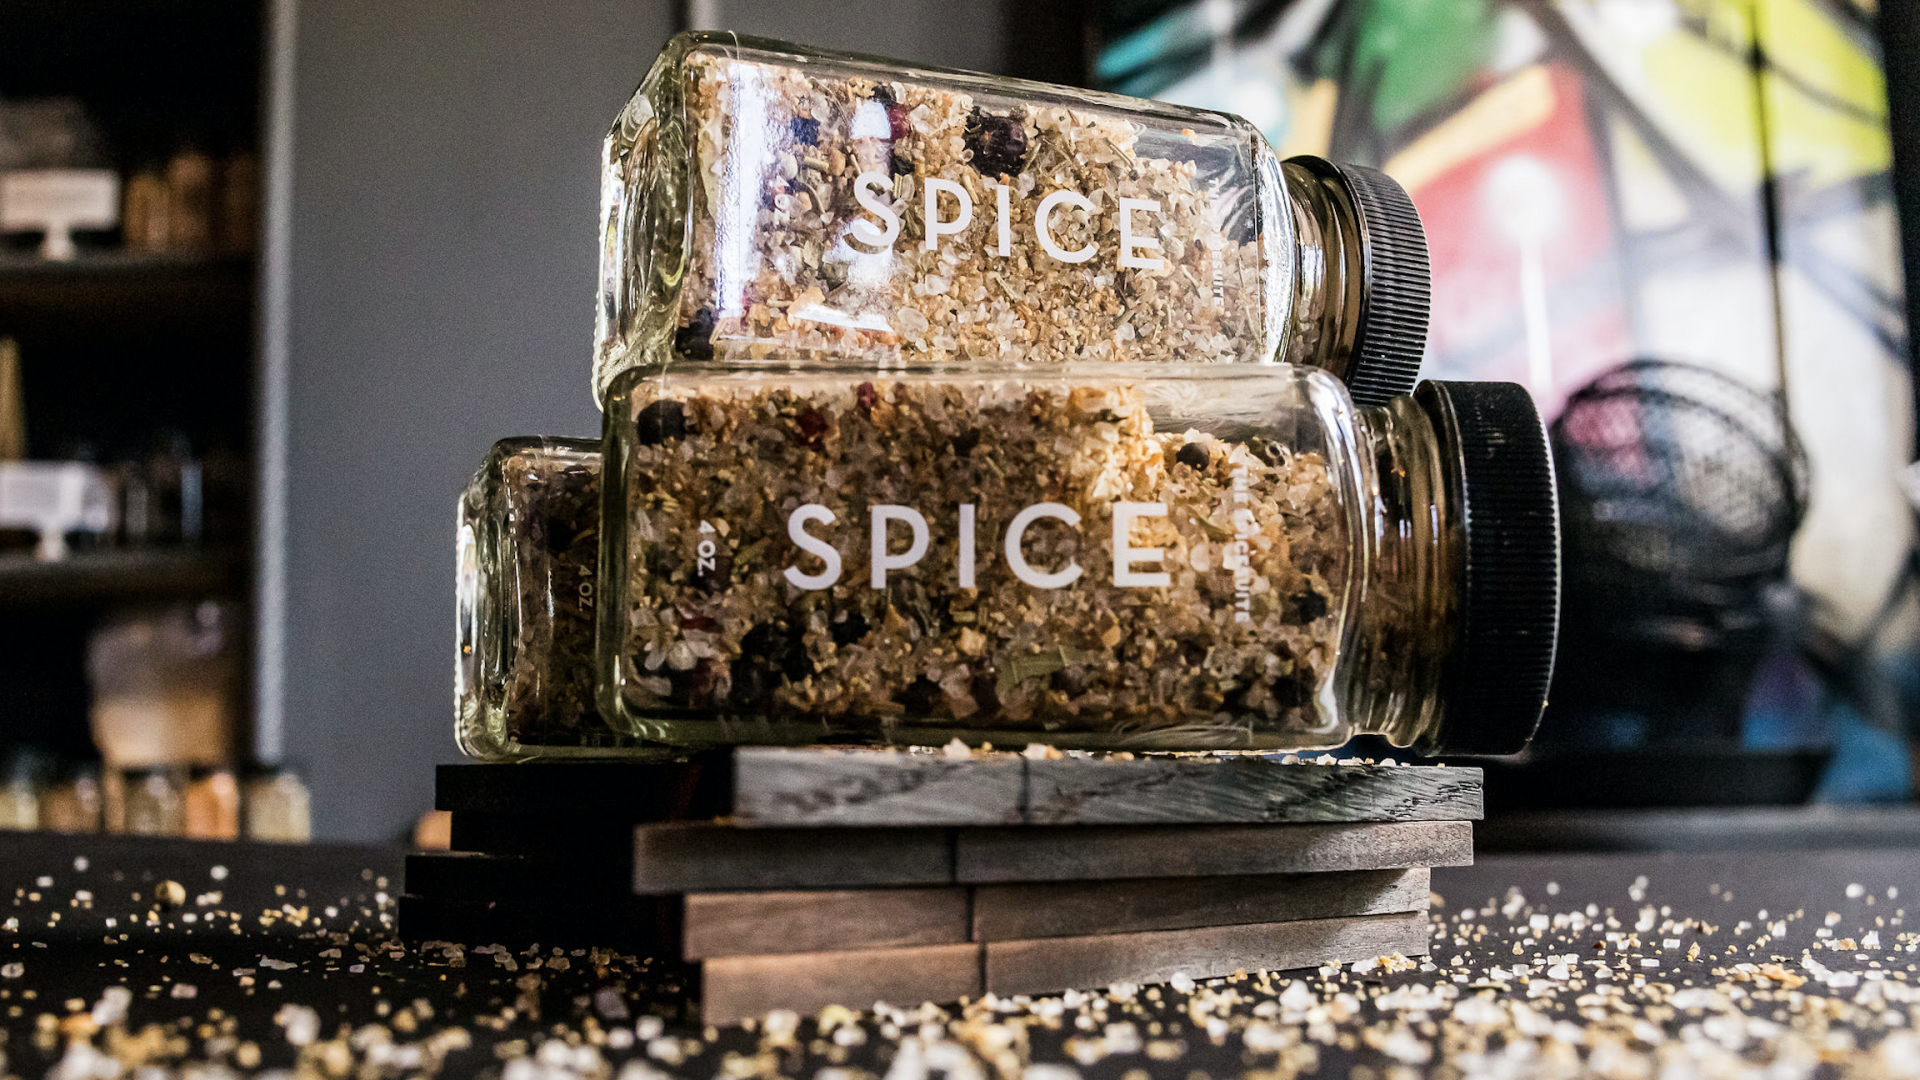 Black-Owned Seasoning Brand 'The Spice Suite' Collaborates With Kelis